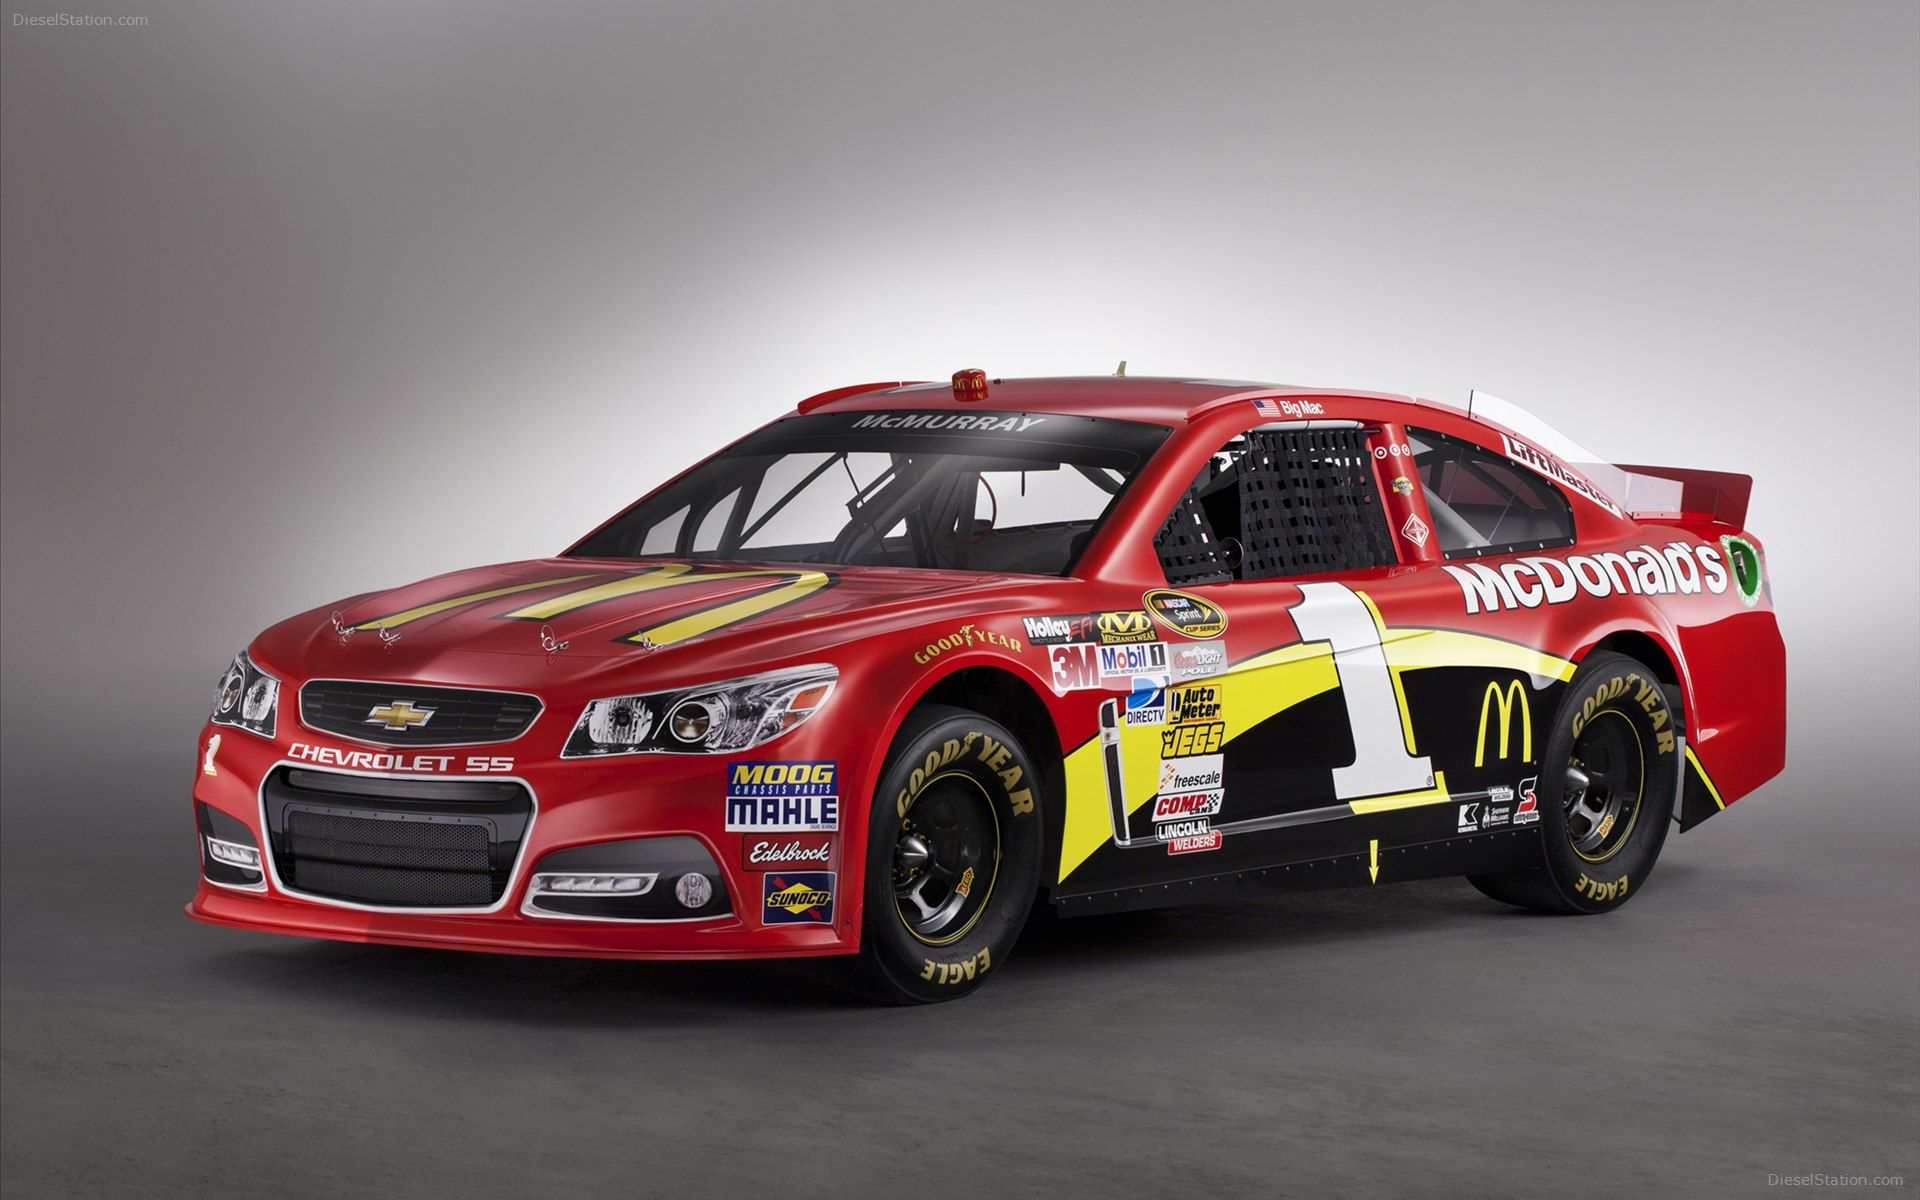 nascar racing | Chevrolet NASCAR SS Race Car 2013 Widescreen Exotic Car Picture #07 of ...